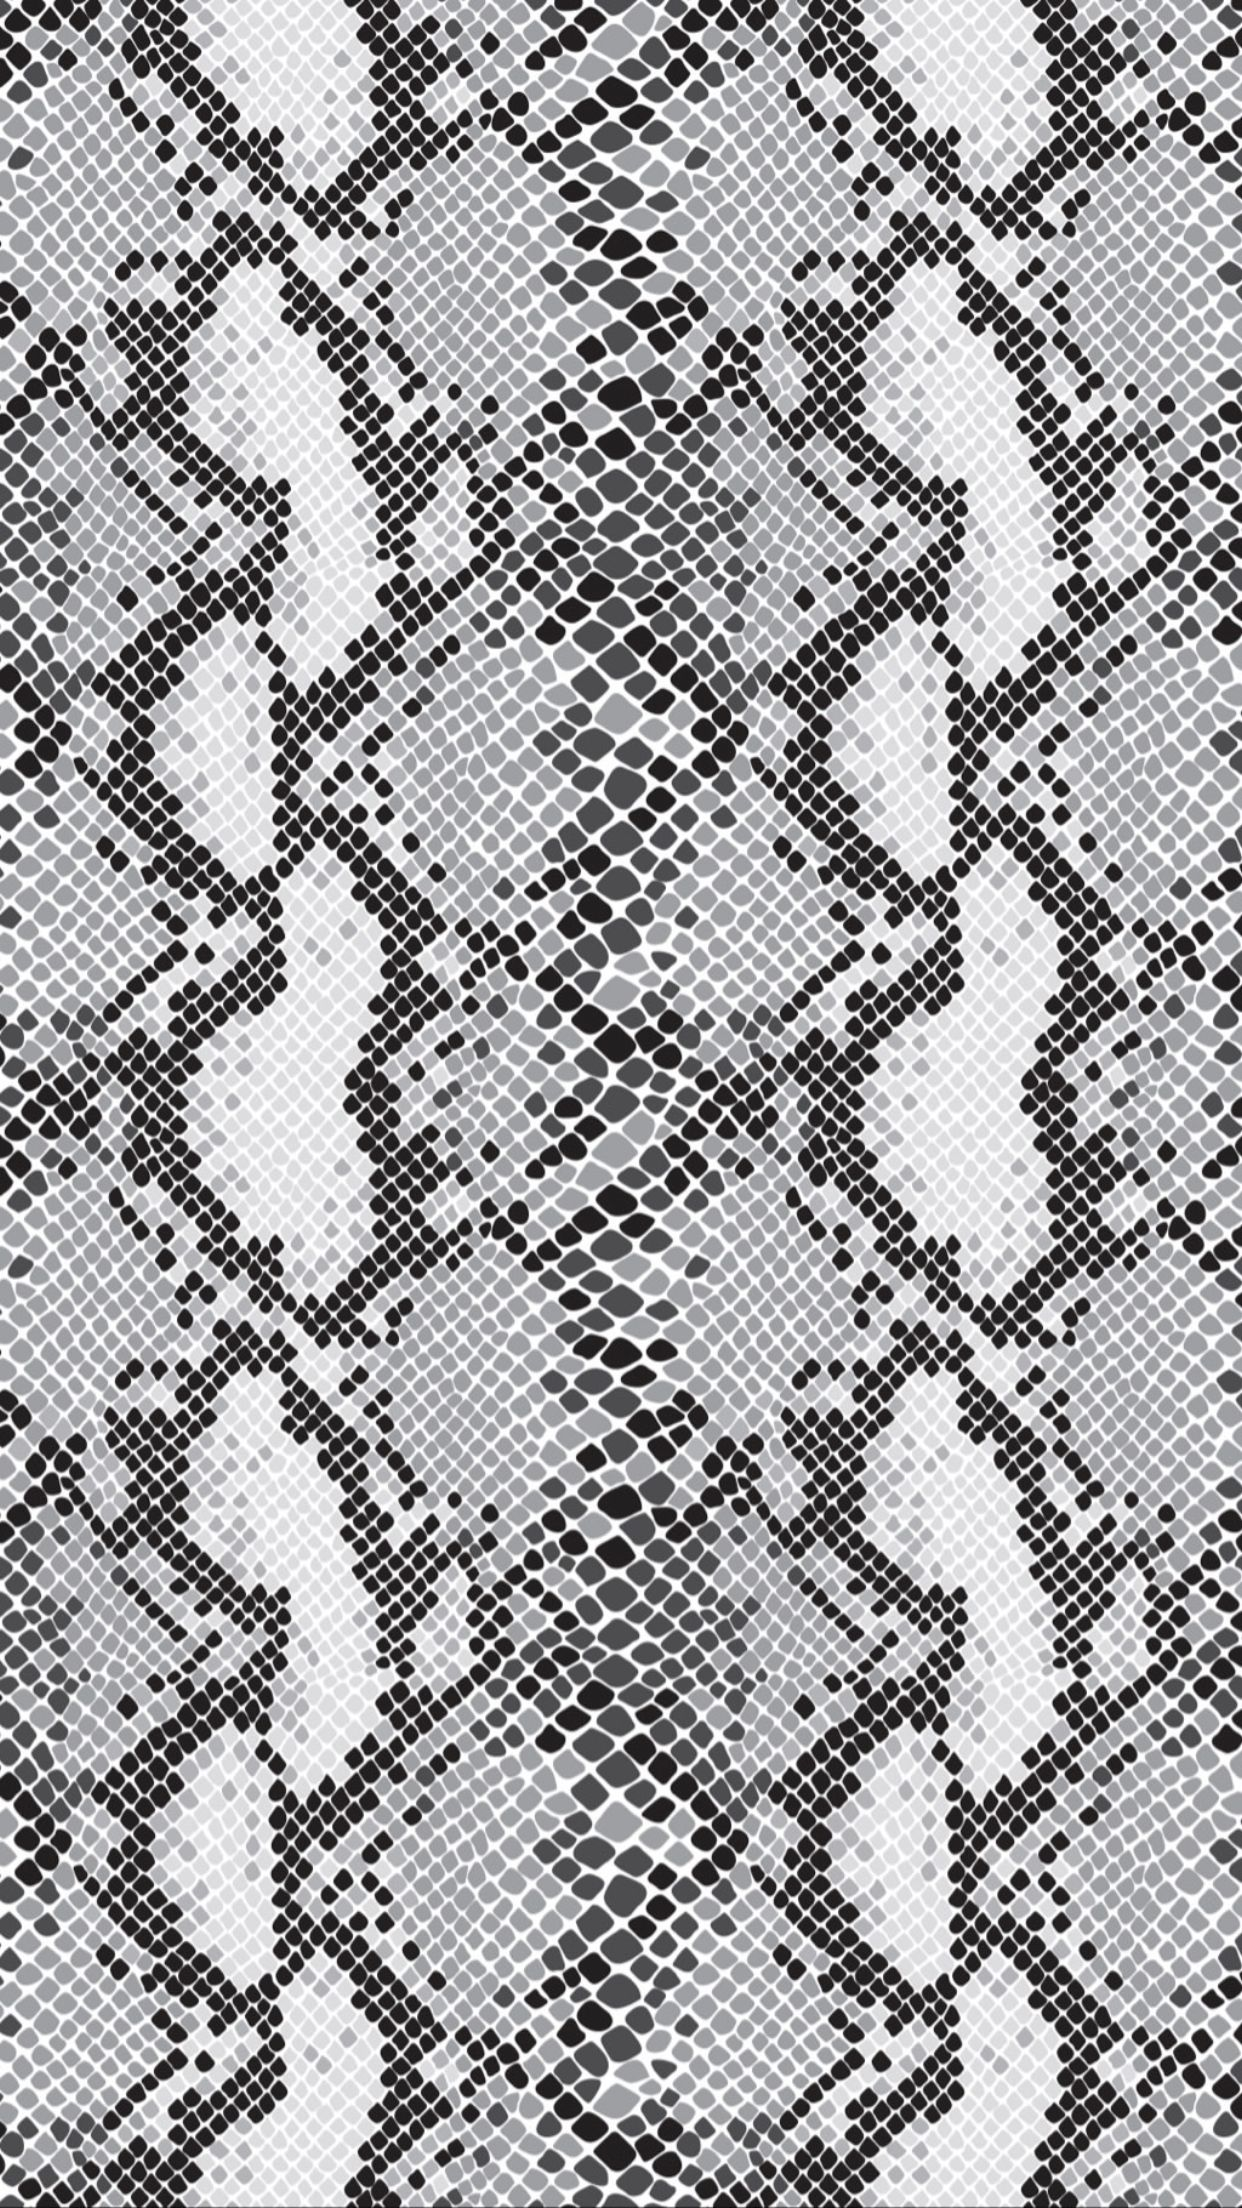 Background Wallpapers Iphone Snakeskin In 2019 Iphone